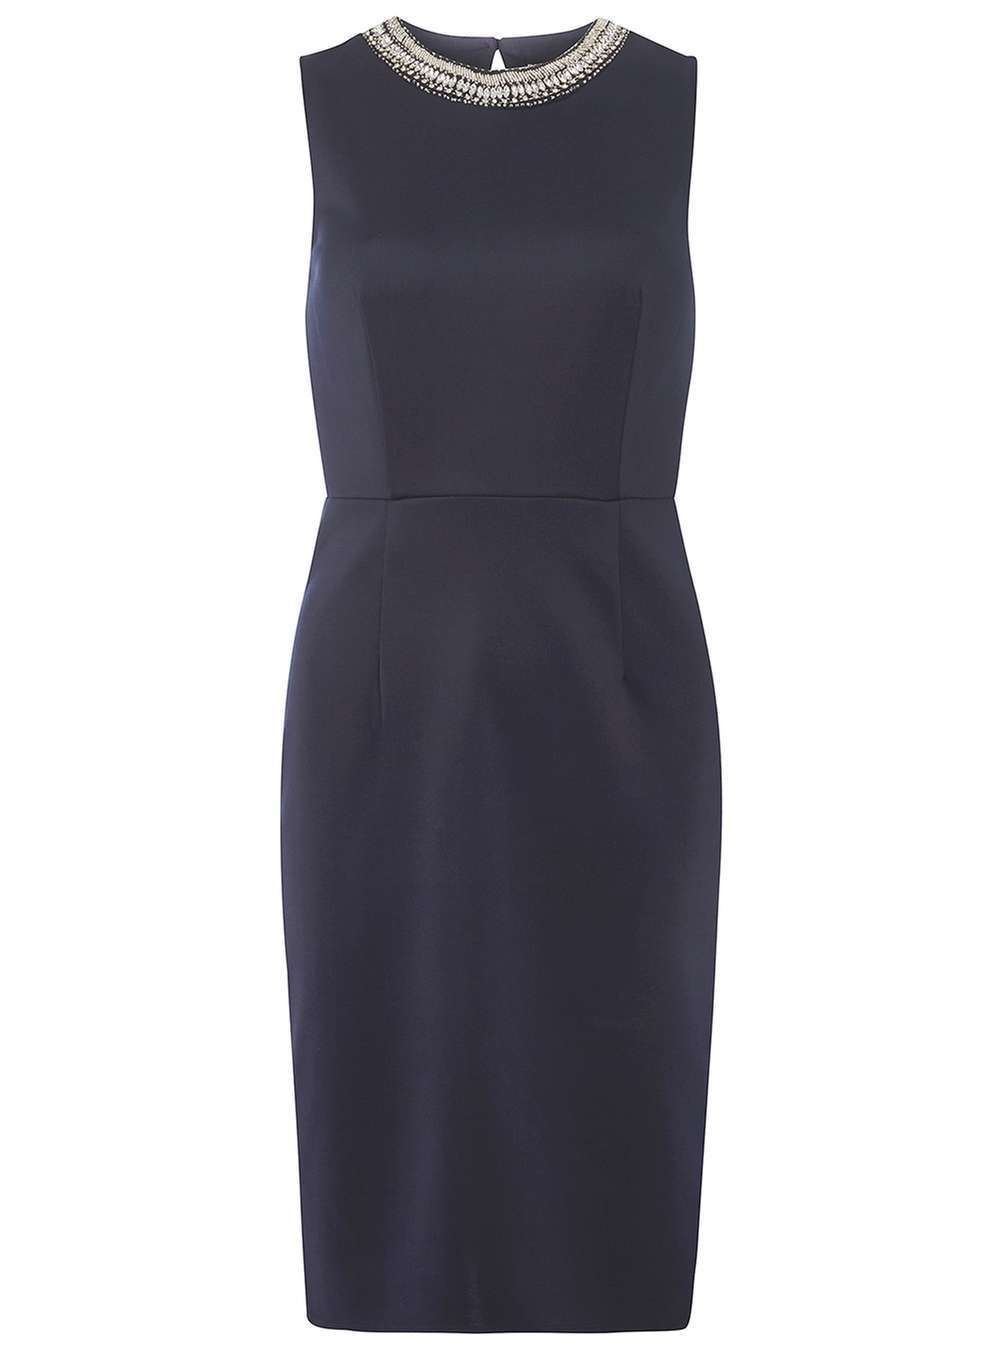 Womens Embellished Pencil Dress Navy - style: shift; pattern: plain; sleeve style: sleeveless; predominant colour: navy; occasions: evening; length: just above the knee; fit: body skimming; fibres: polyester/polyamide - stretch; neckline: crew; sleeve length: sleeveless; pattern type: fabric; texture group: jersey - stretchy/drapey; embellishment: sequins; season: a/w 2016; wardrobe: event; embellishment location: bust